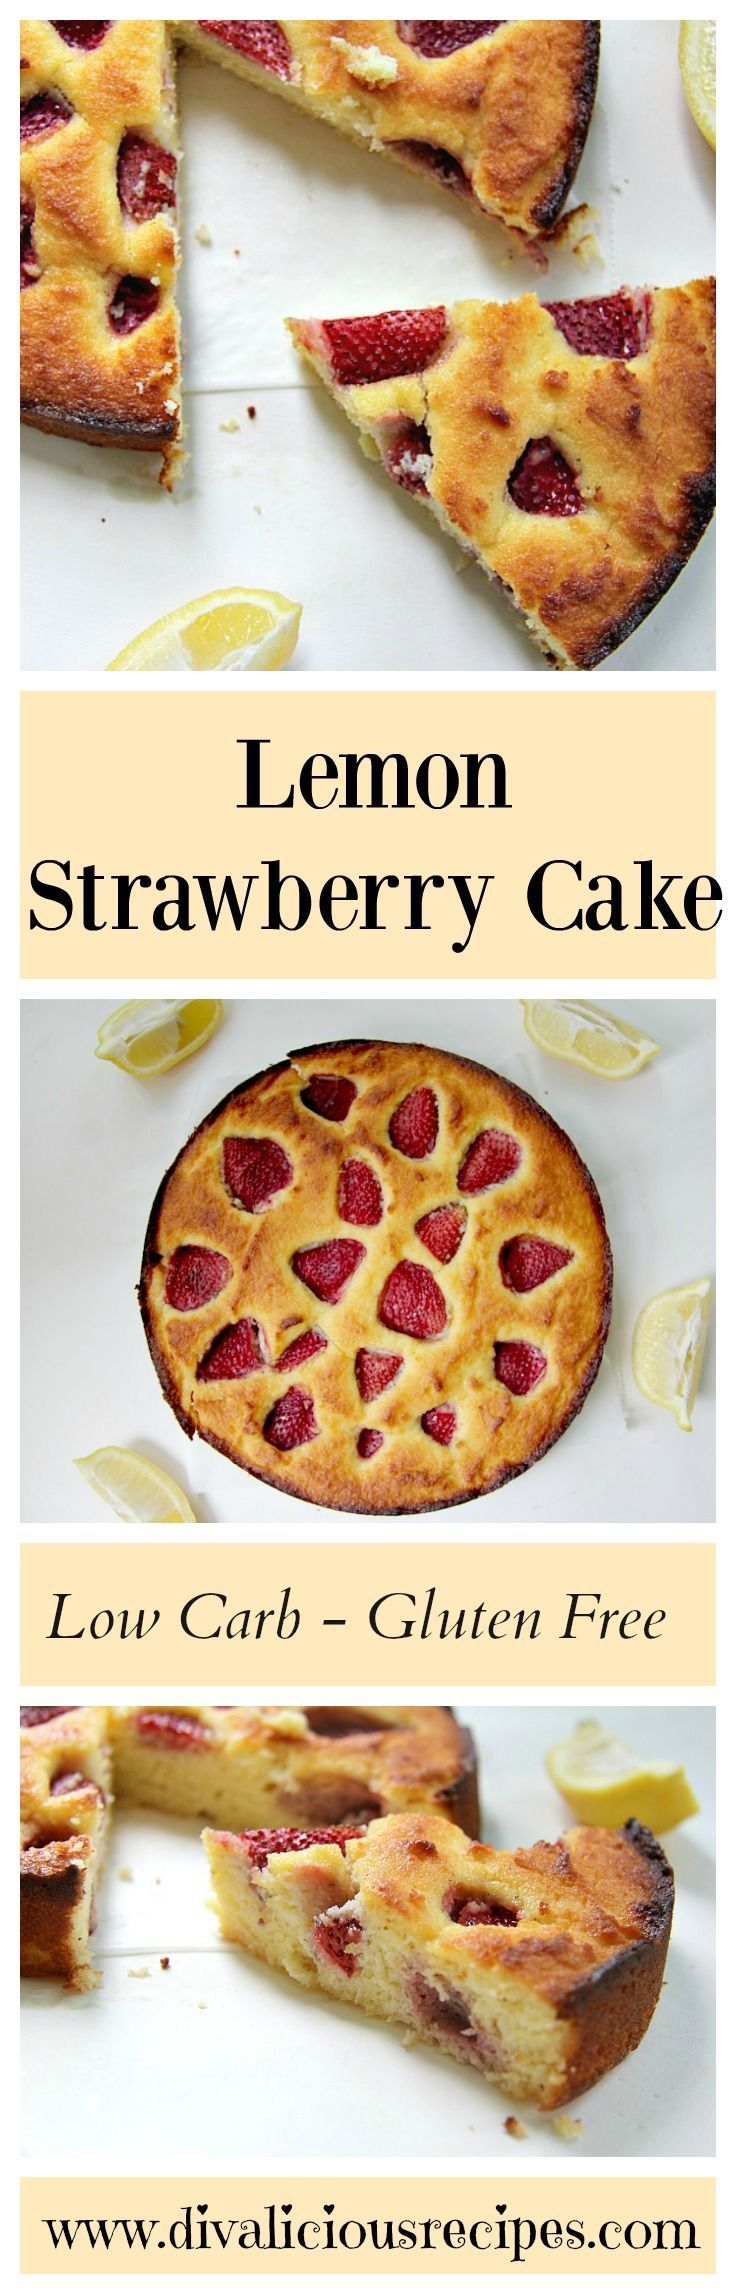 A lemon strawberry cake recipe that is light, moist and delicious. Baked with coconut flour this lemon strawberry cake is low carb and gluten free.  Recipe - http://divaliciousrecipes.com/2017/04/24/lemon-strawberry-cake-low-carb/